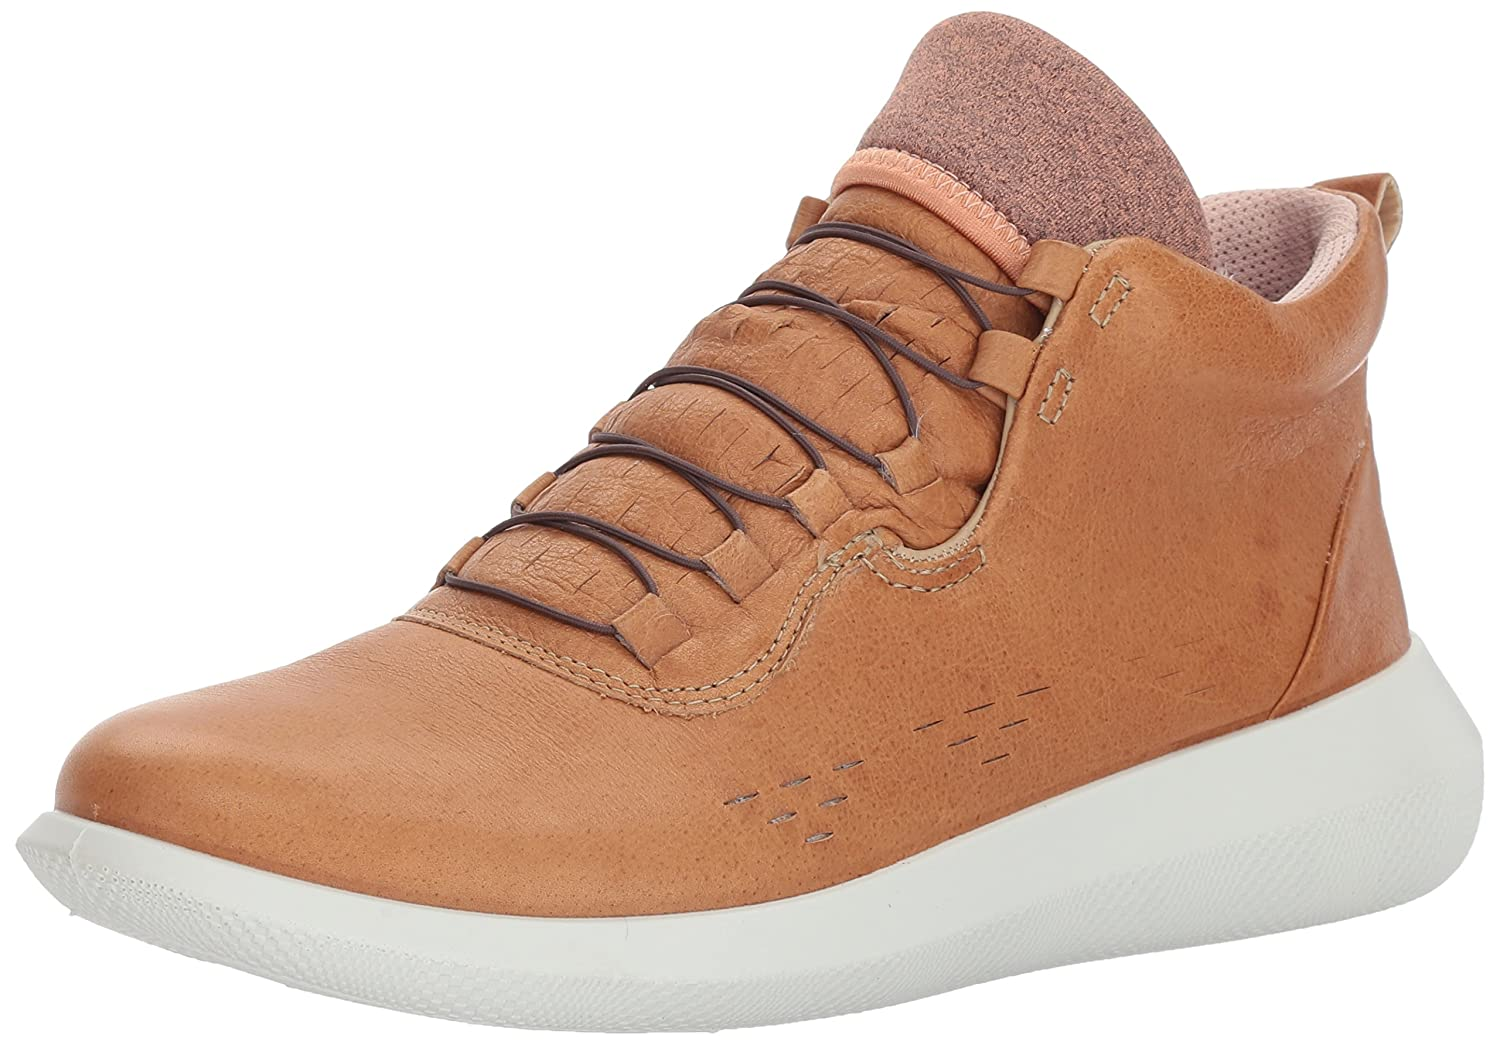 ECCO Women's Scinapse High Top Fashion Sneaker B071V5SBVP 40 EU/9-9.5 M US|Volluto